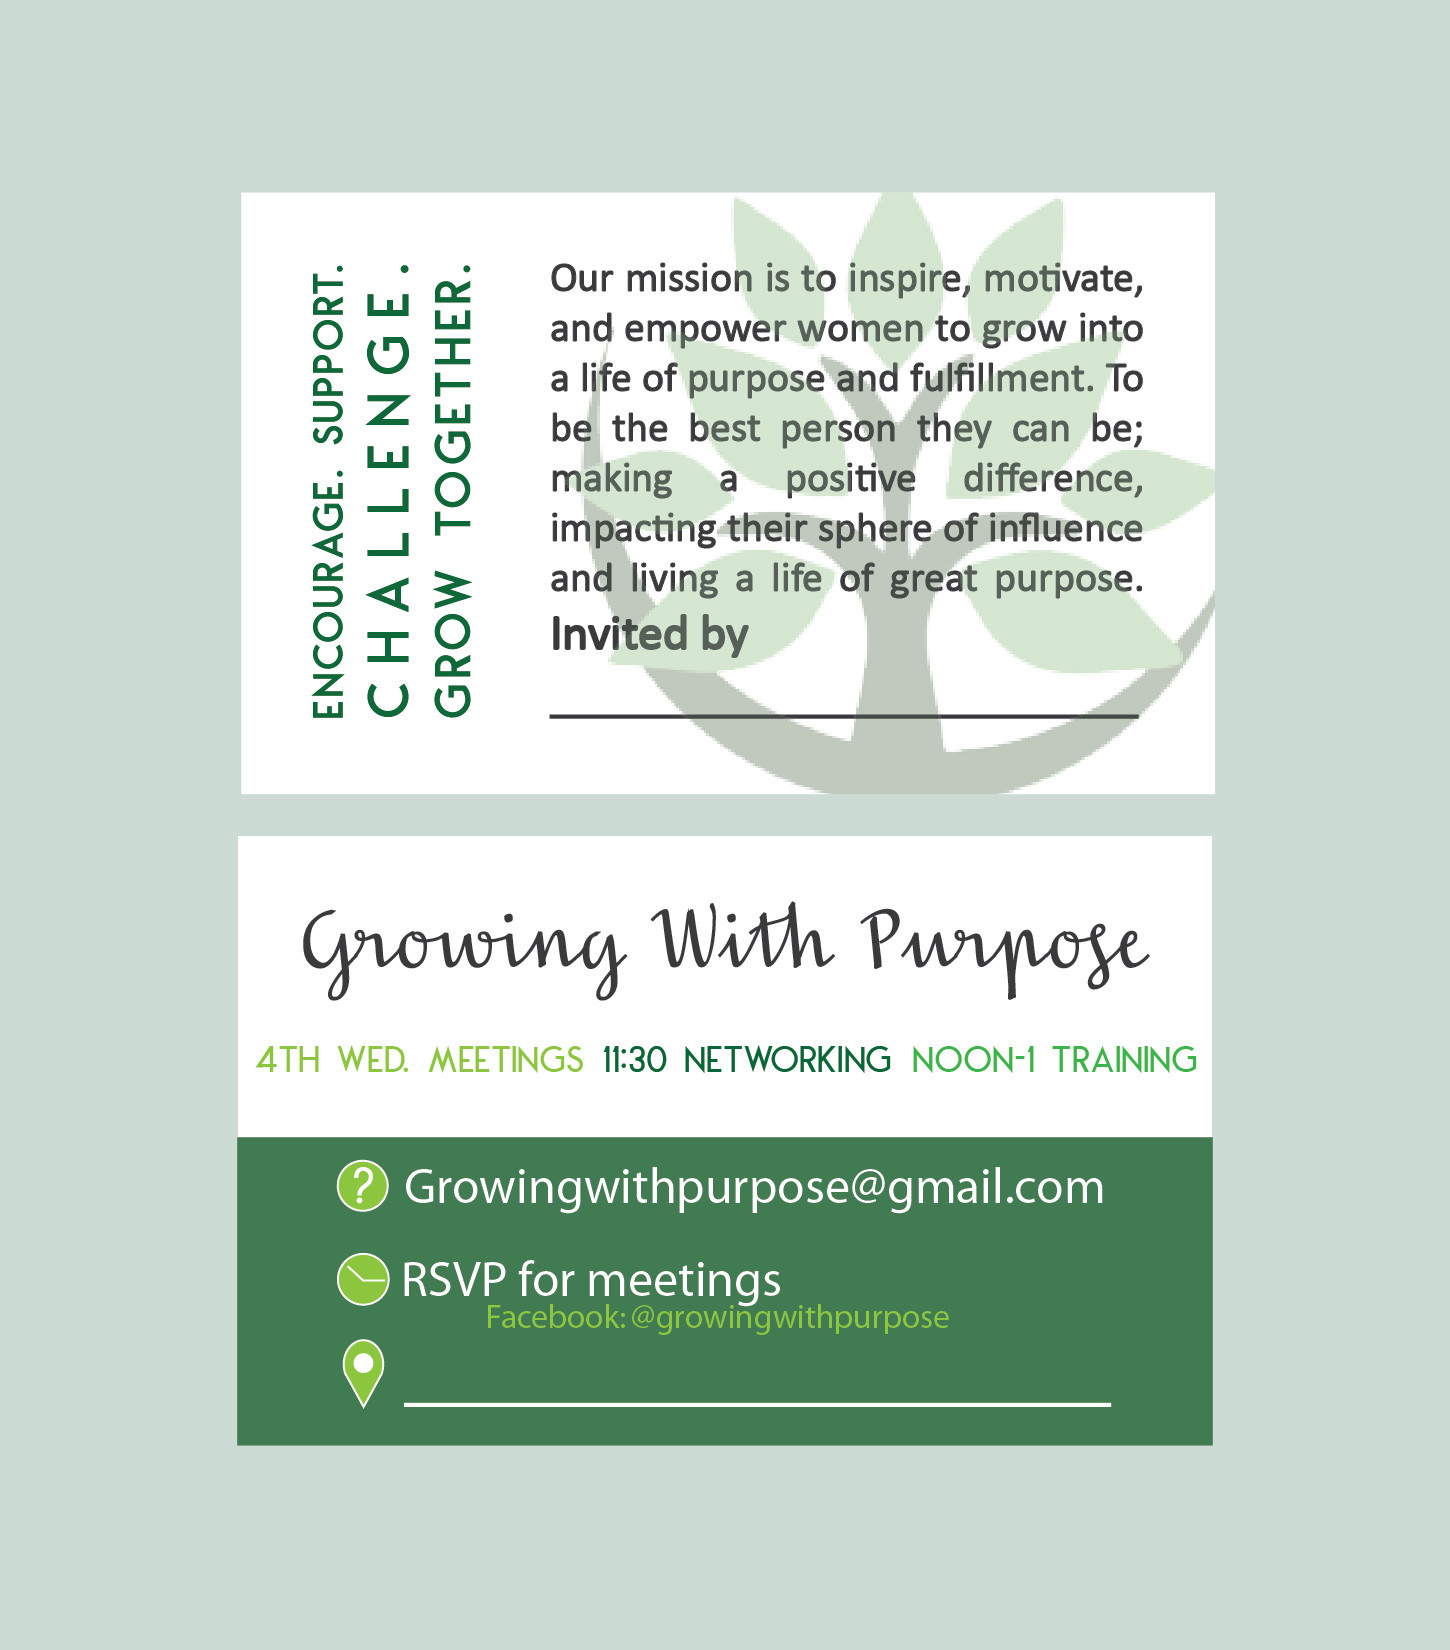 Growing with purpose business card-01.jp